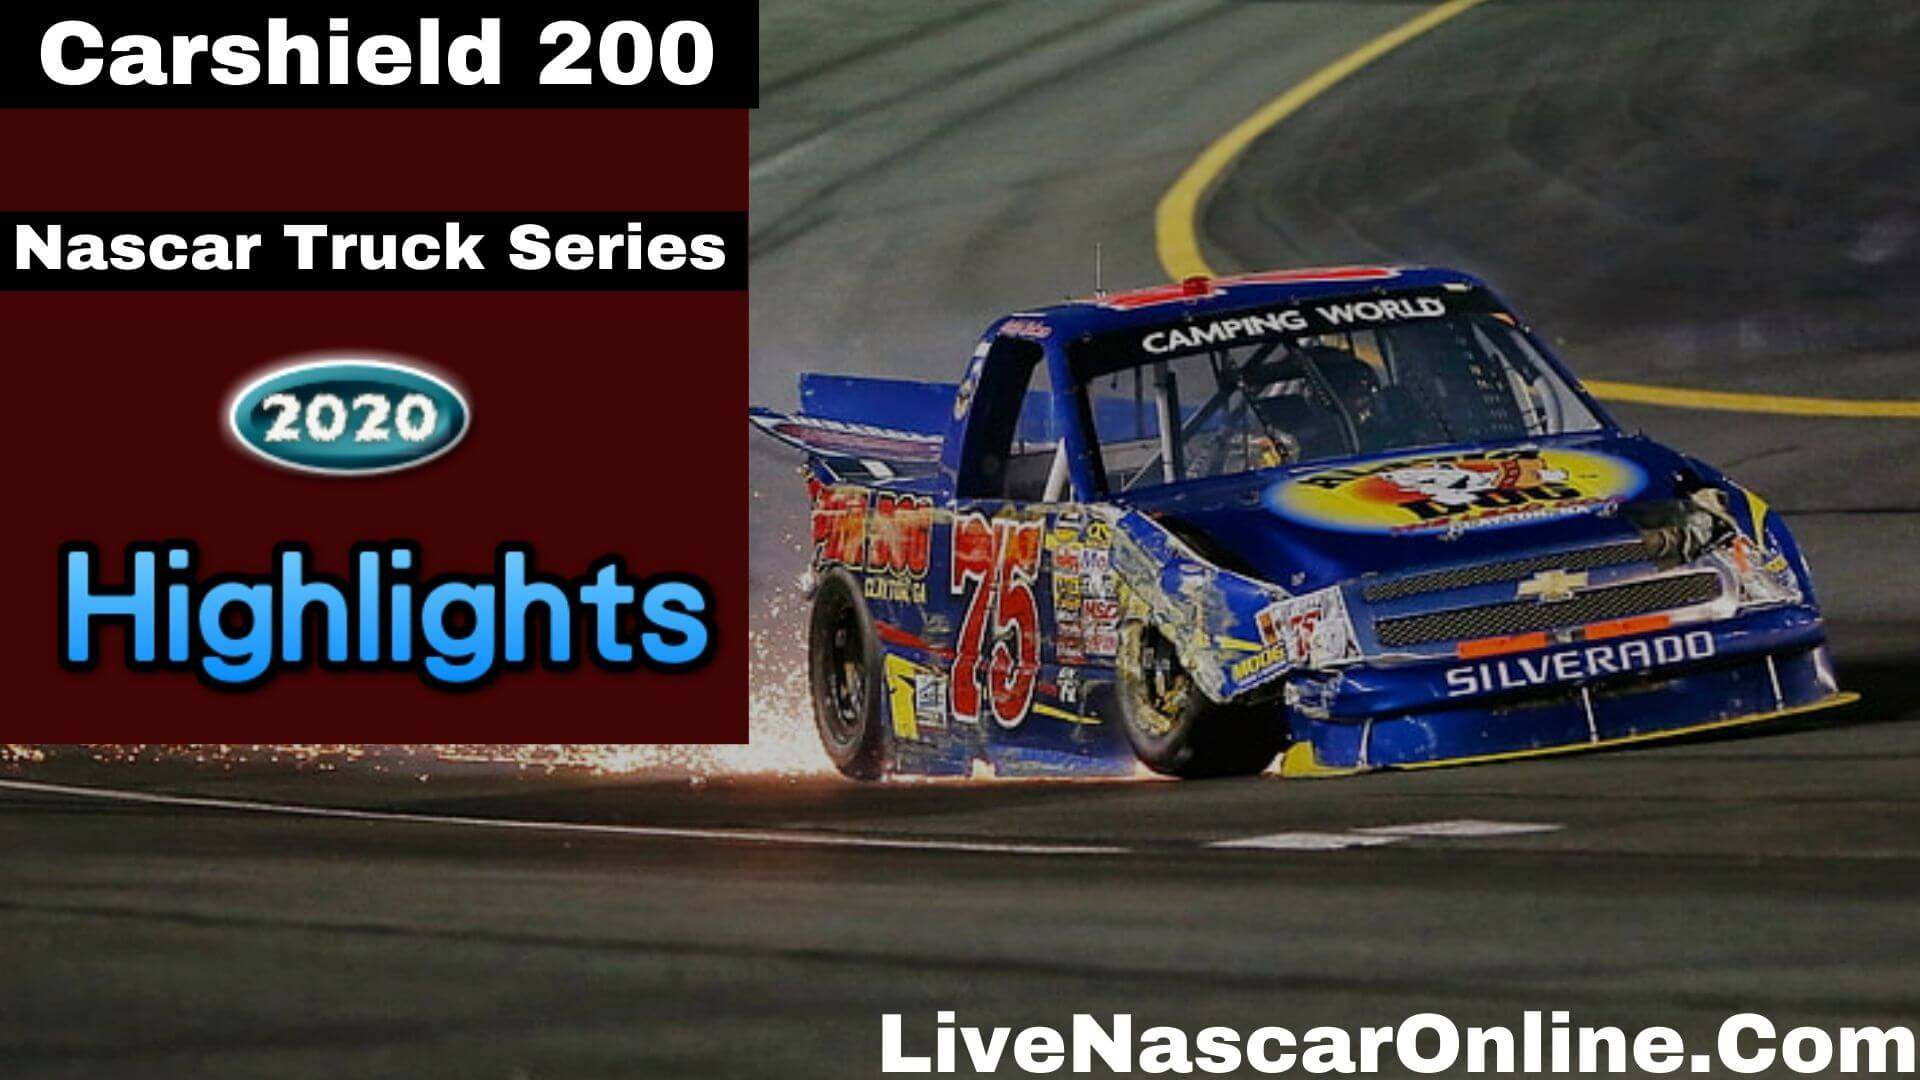 Carshield 200 Nascar Truck Series Highlights 2020